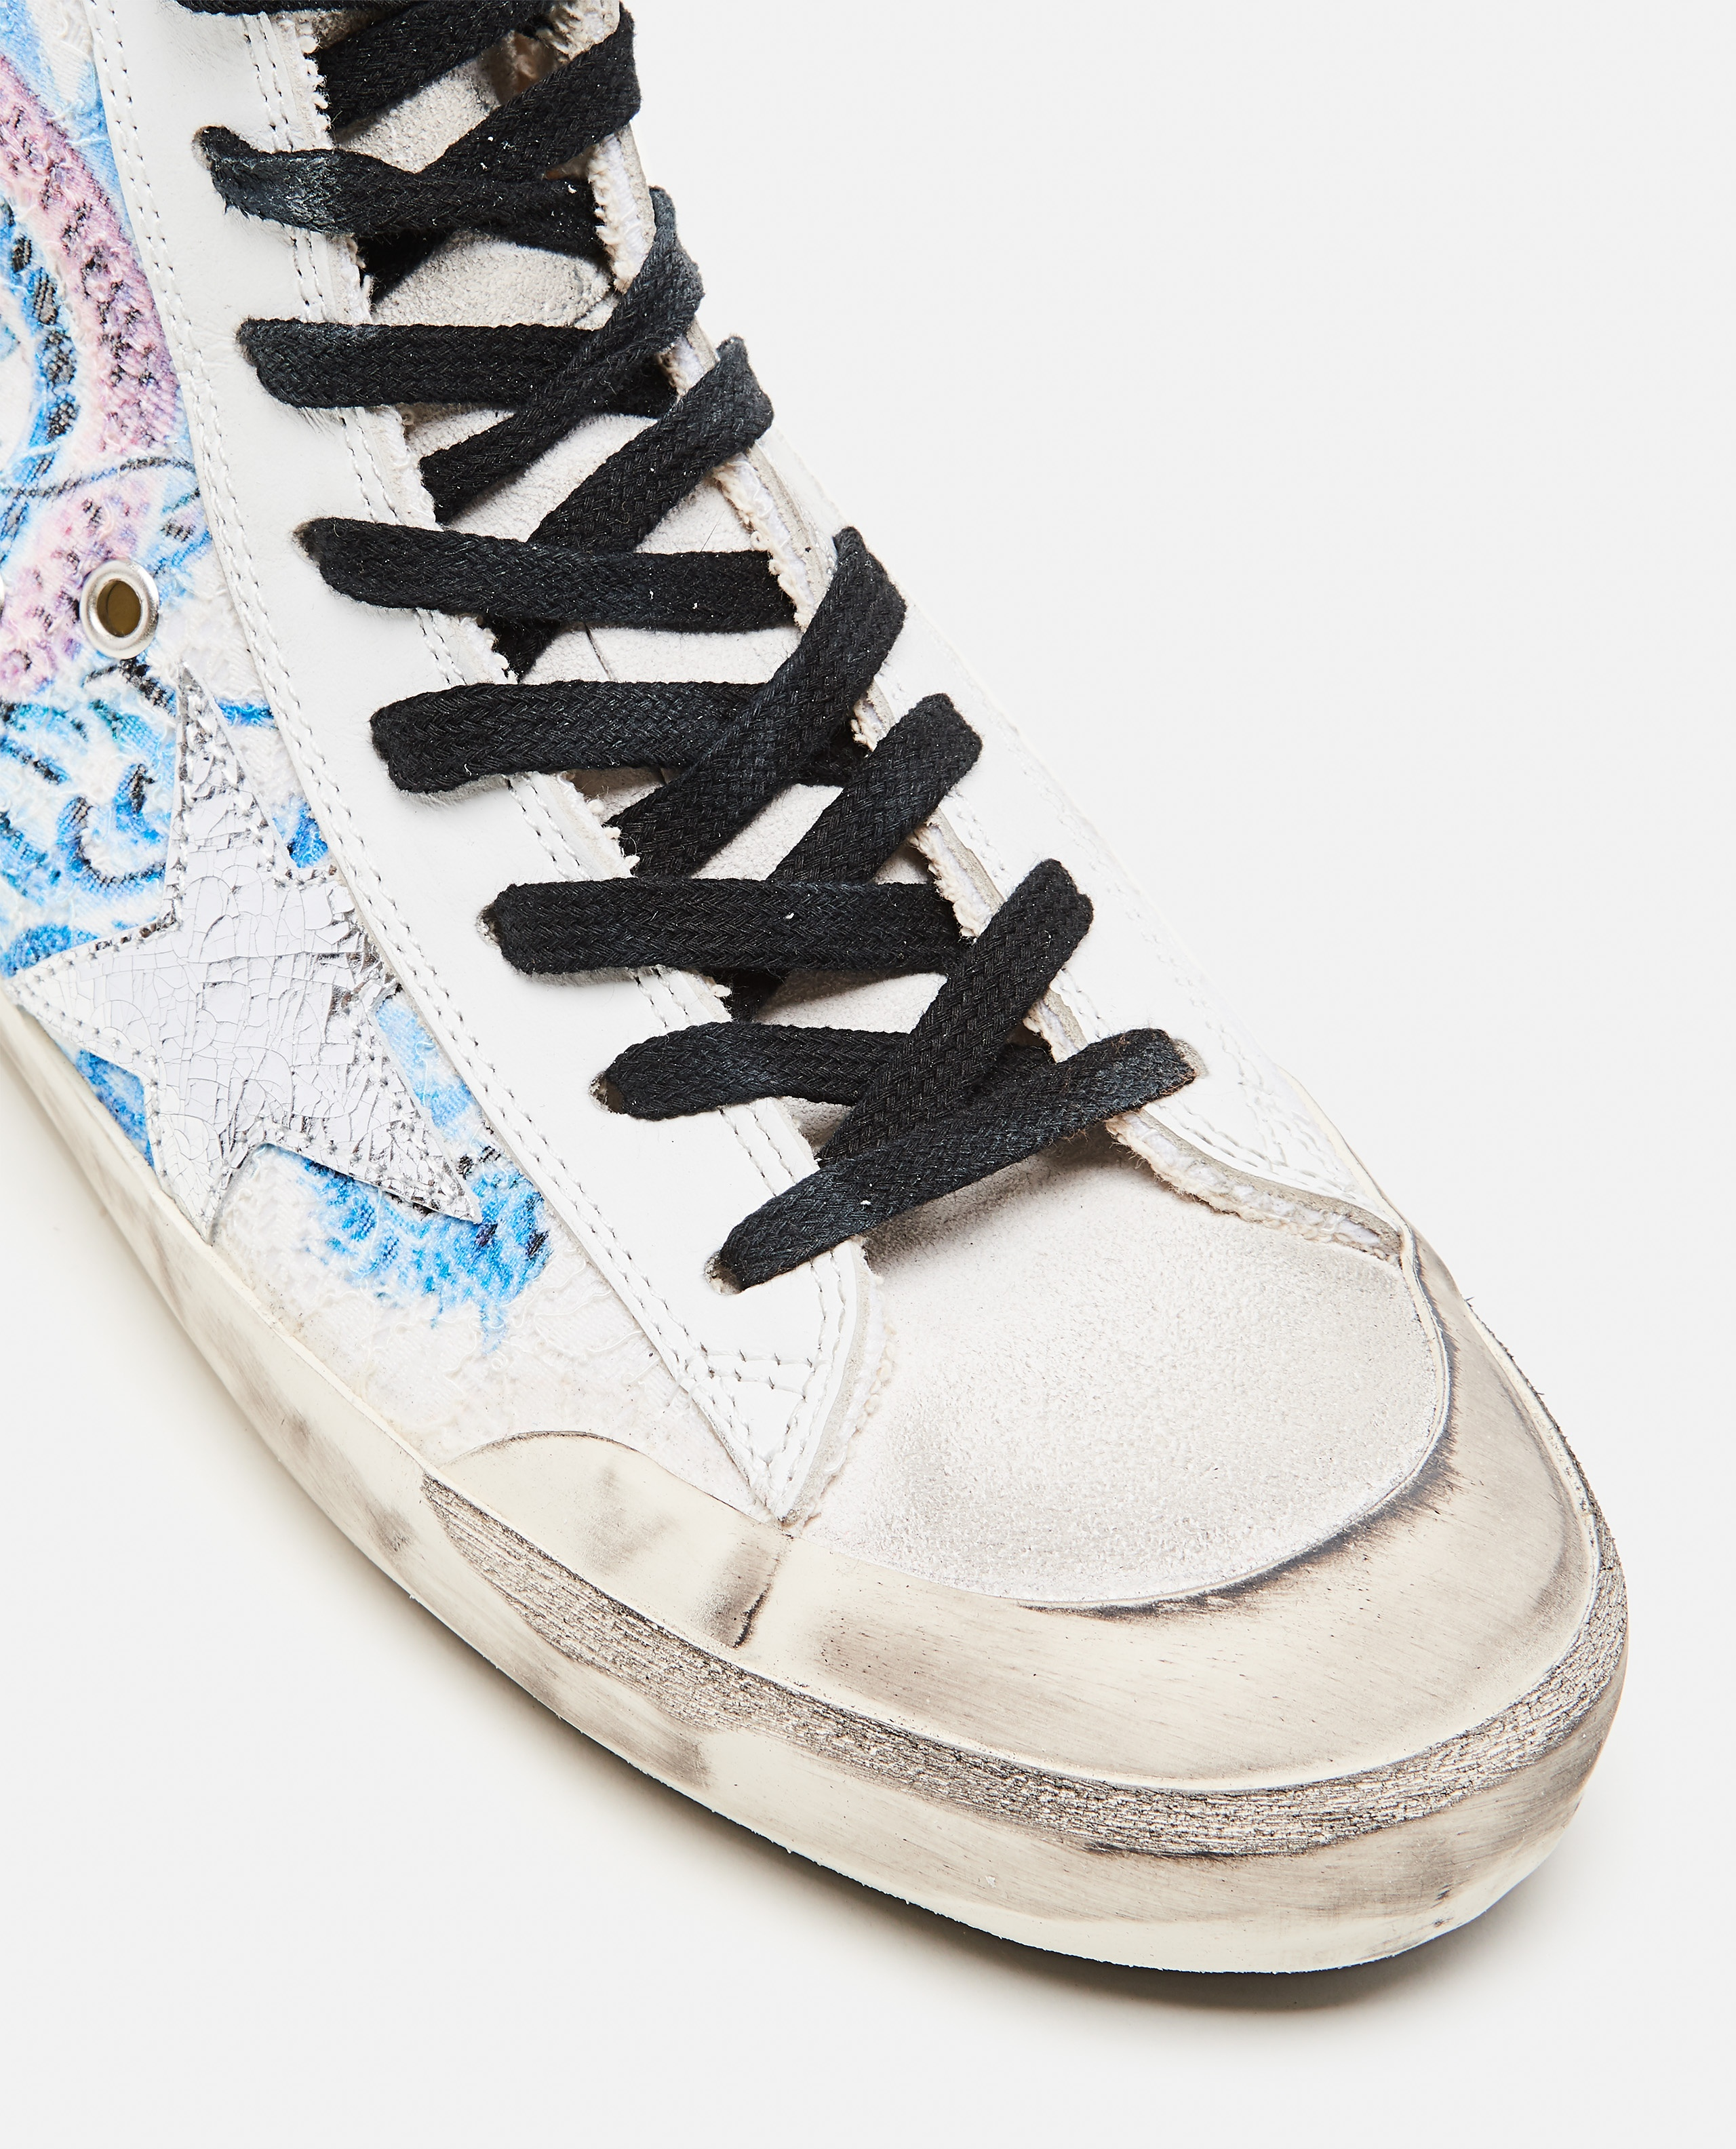 Francy Lace sneakers with Japanese Crackle` Star print Donna Golden Goose 000286860042310 4